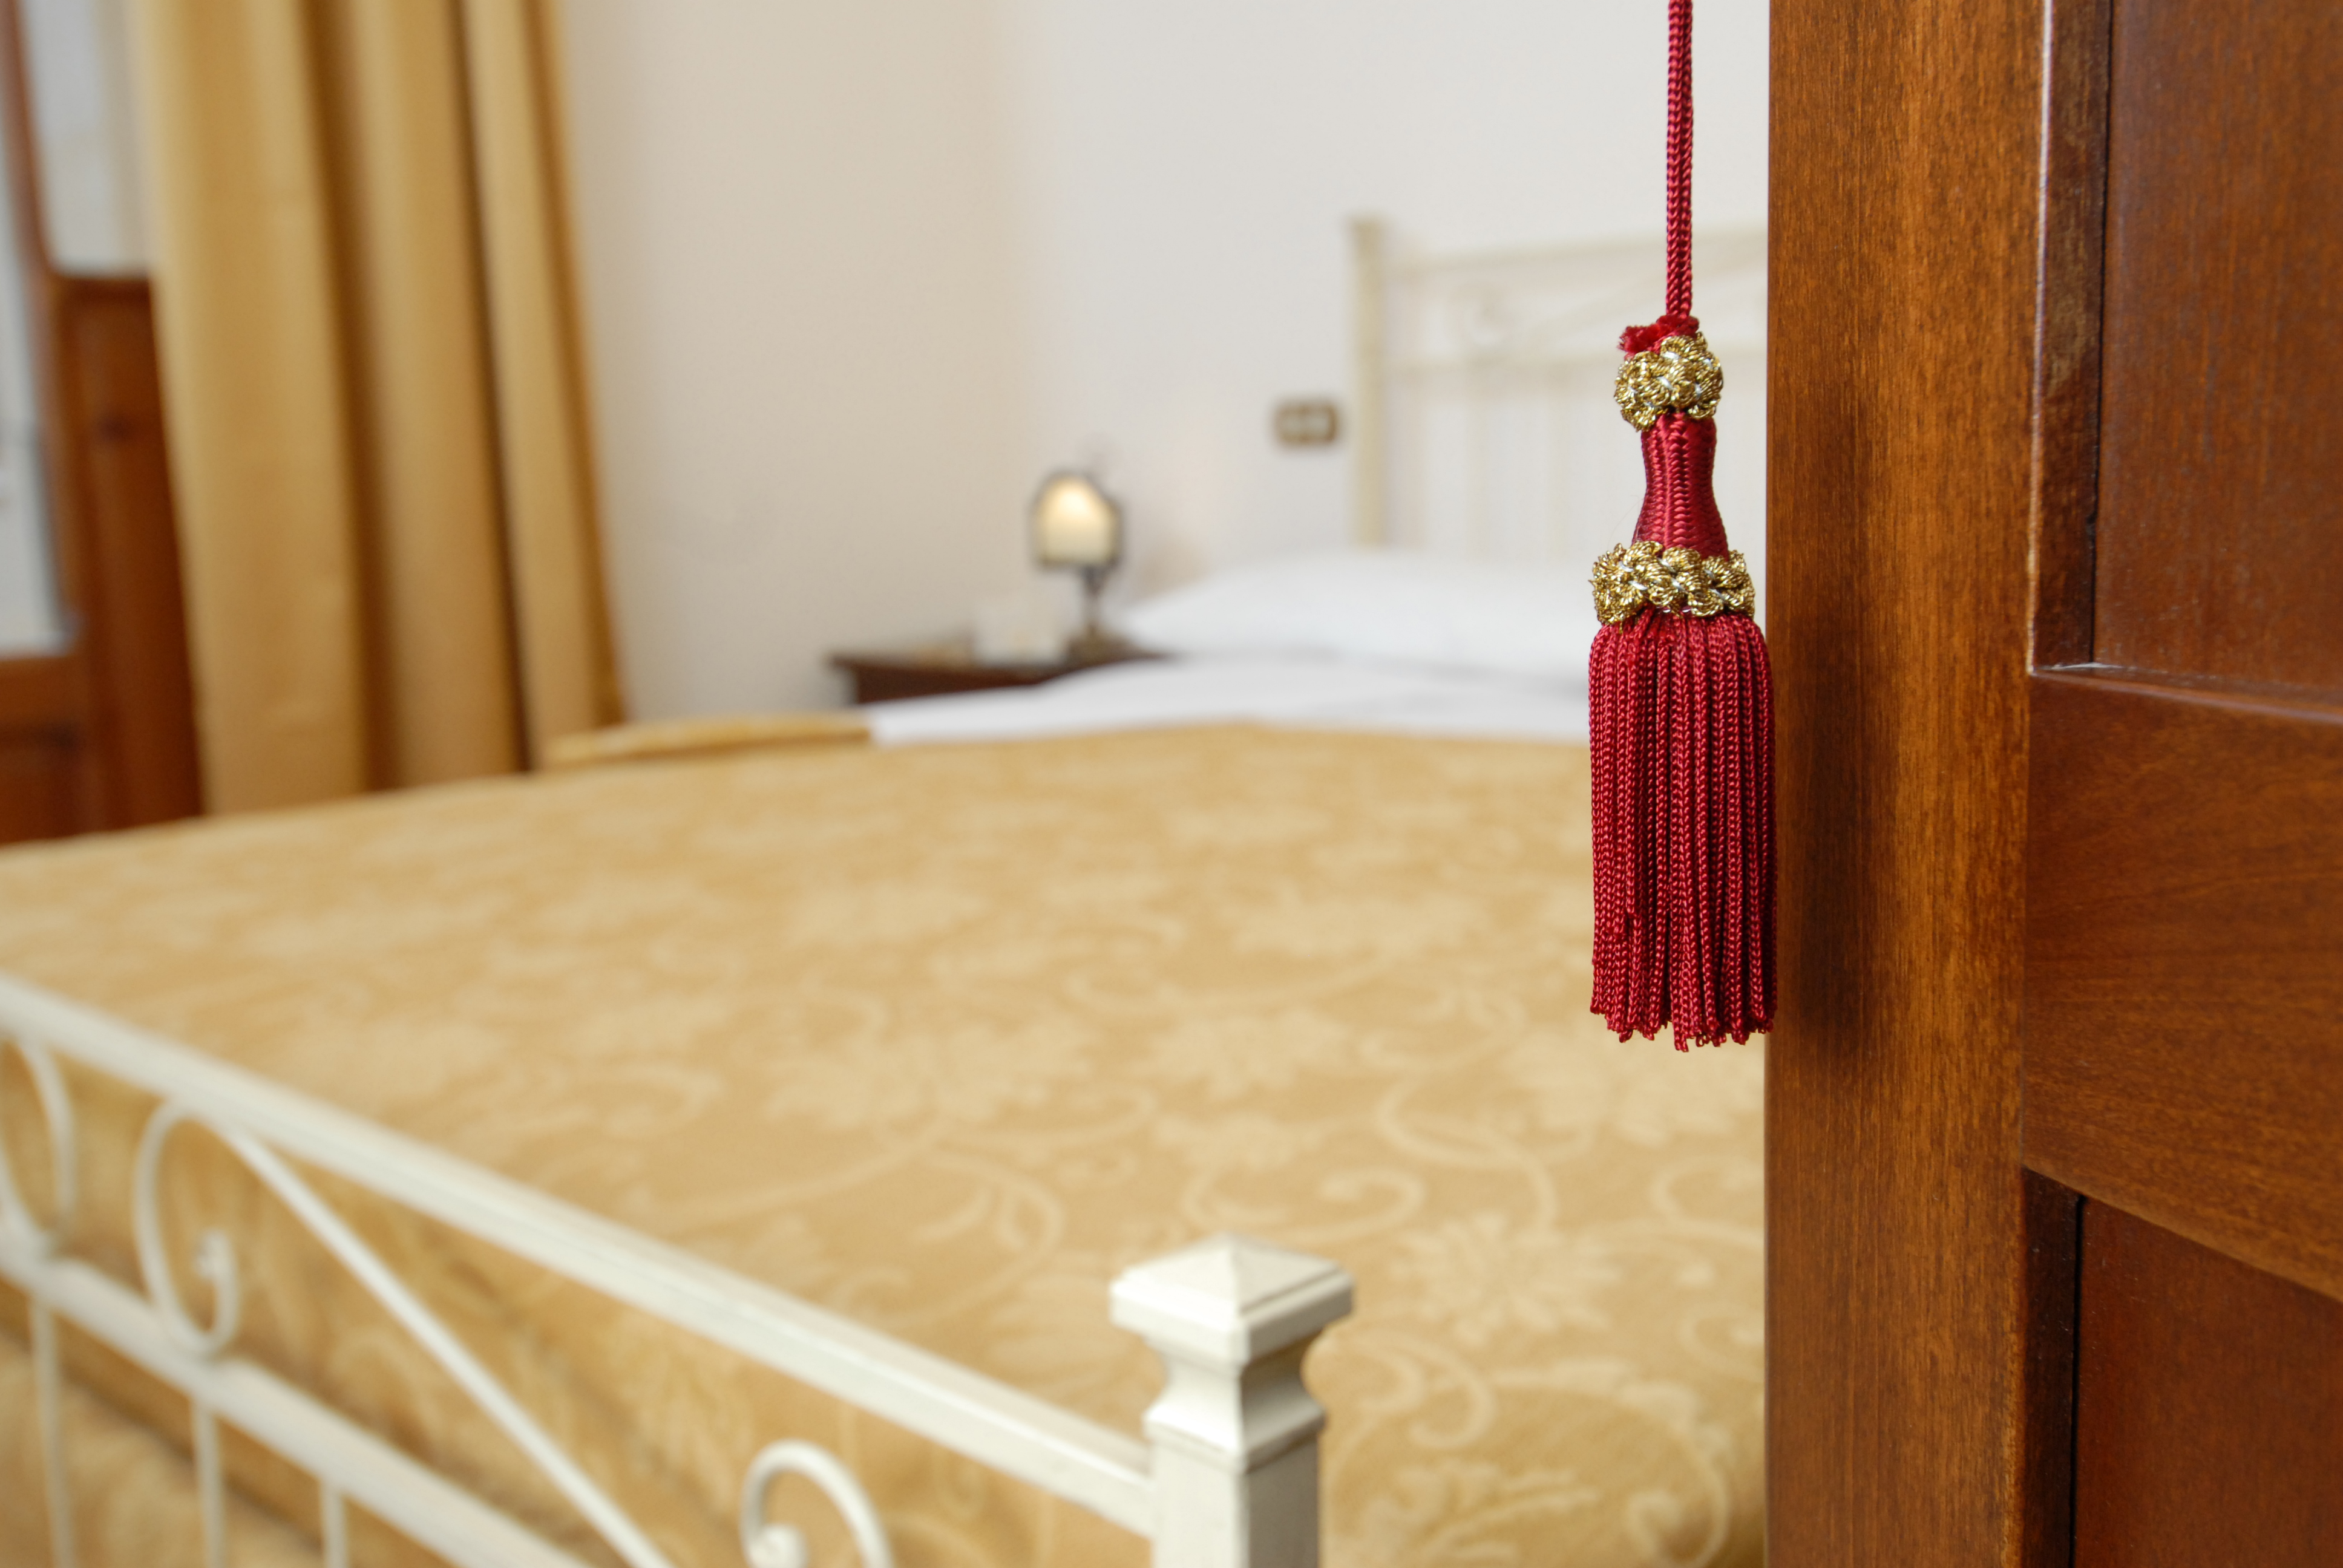 Camere Assisi Dormire B&B Umbria Bed and Breakfast Assisi